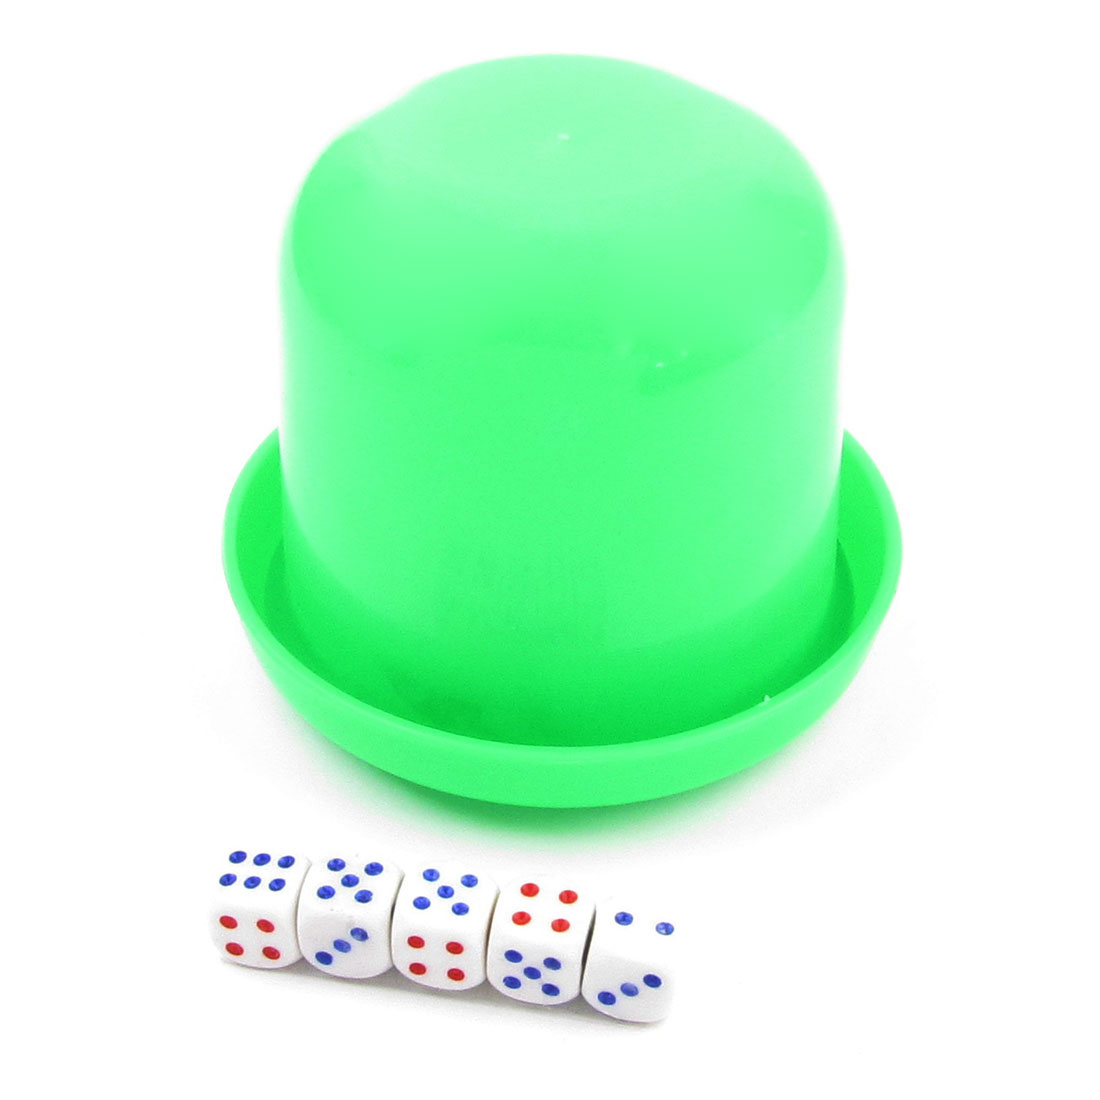 KTV Pub Game Toy Green Plastic Holder Shaking Cup Box w 6 Dice